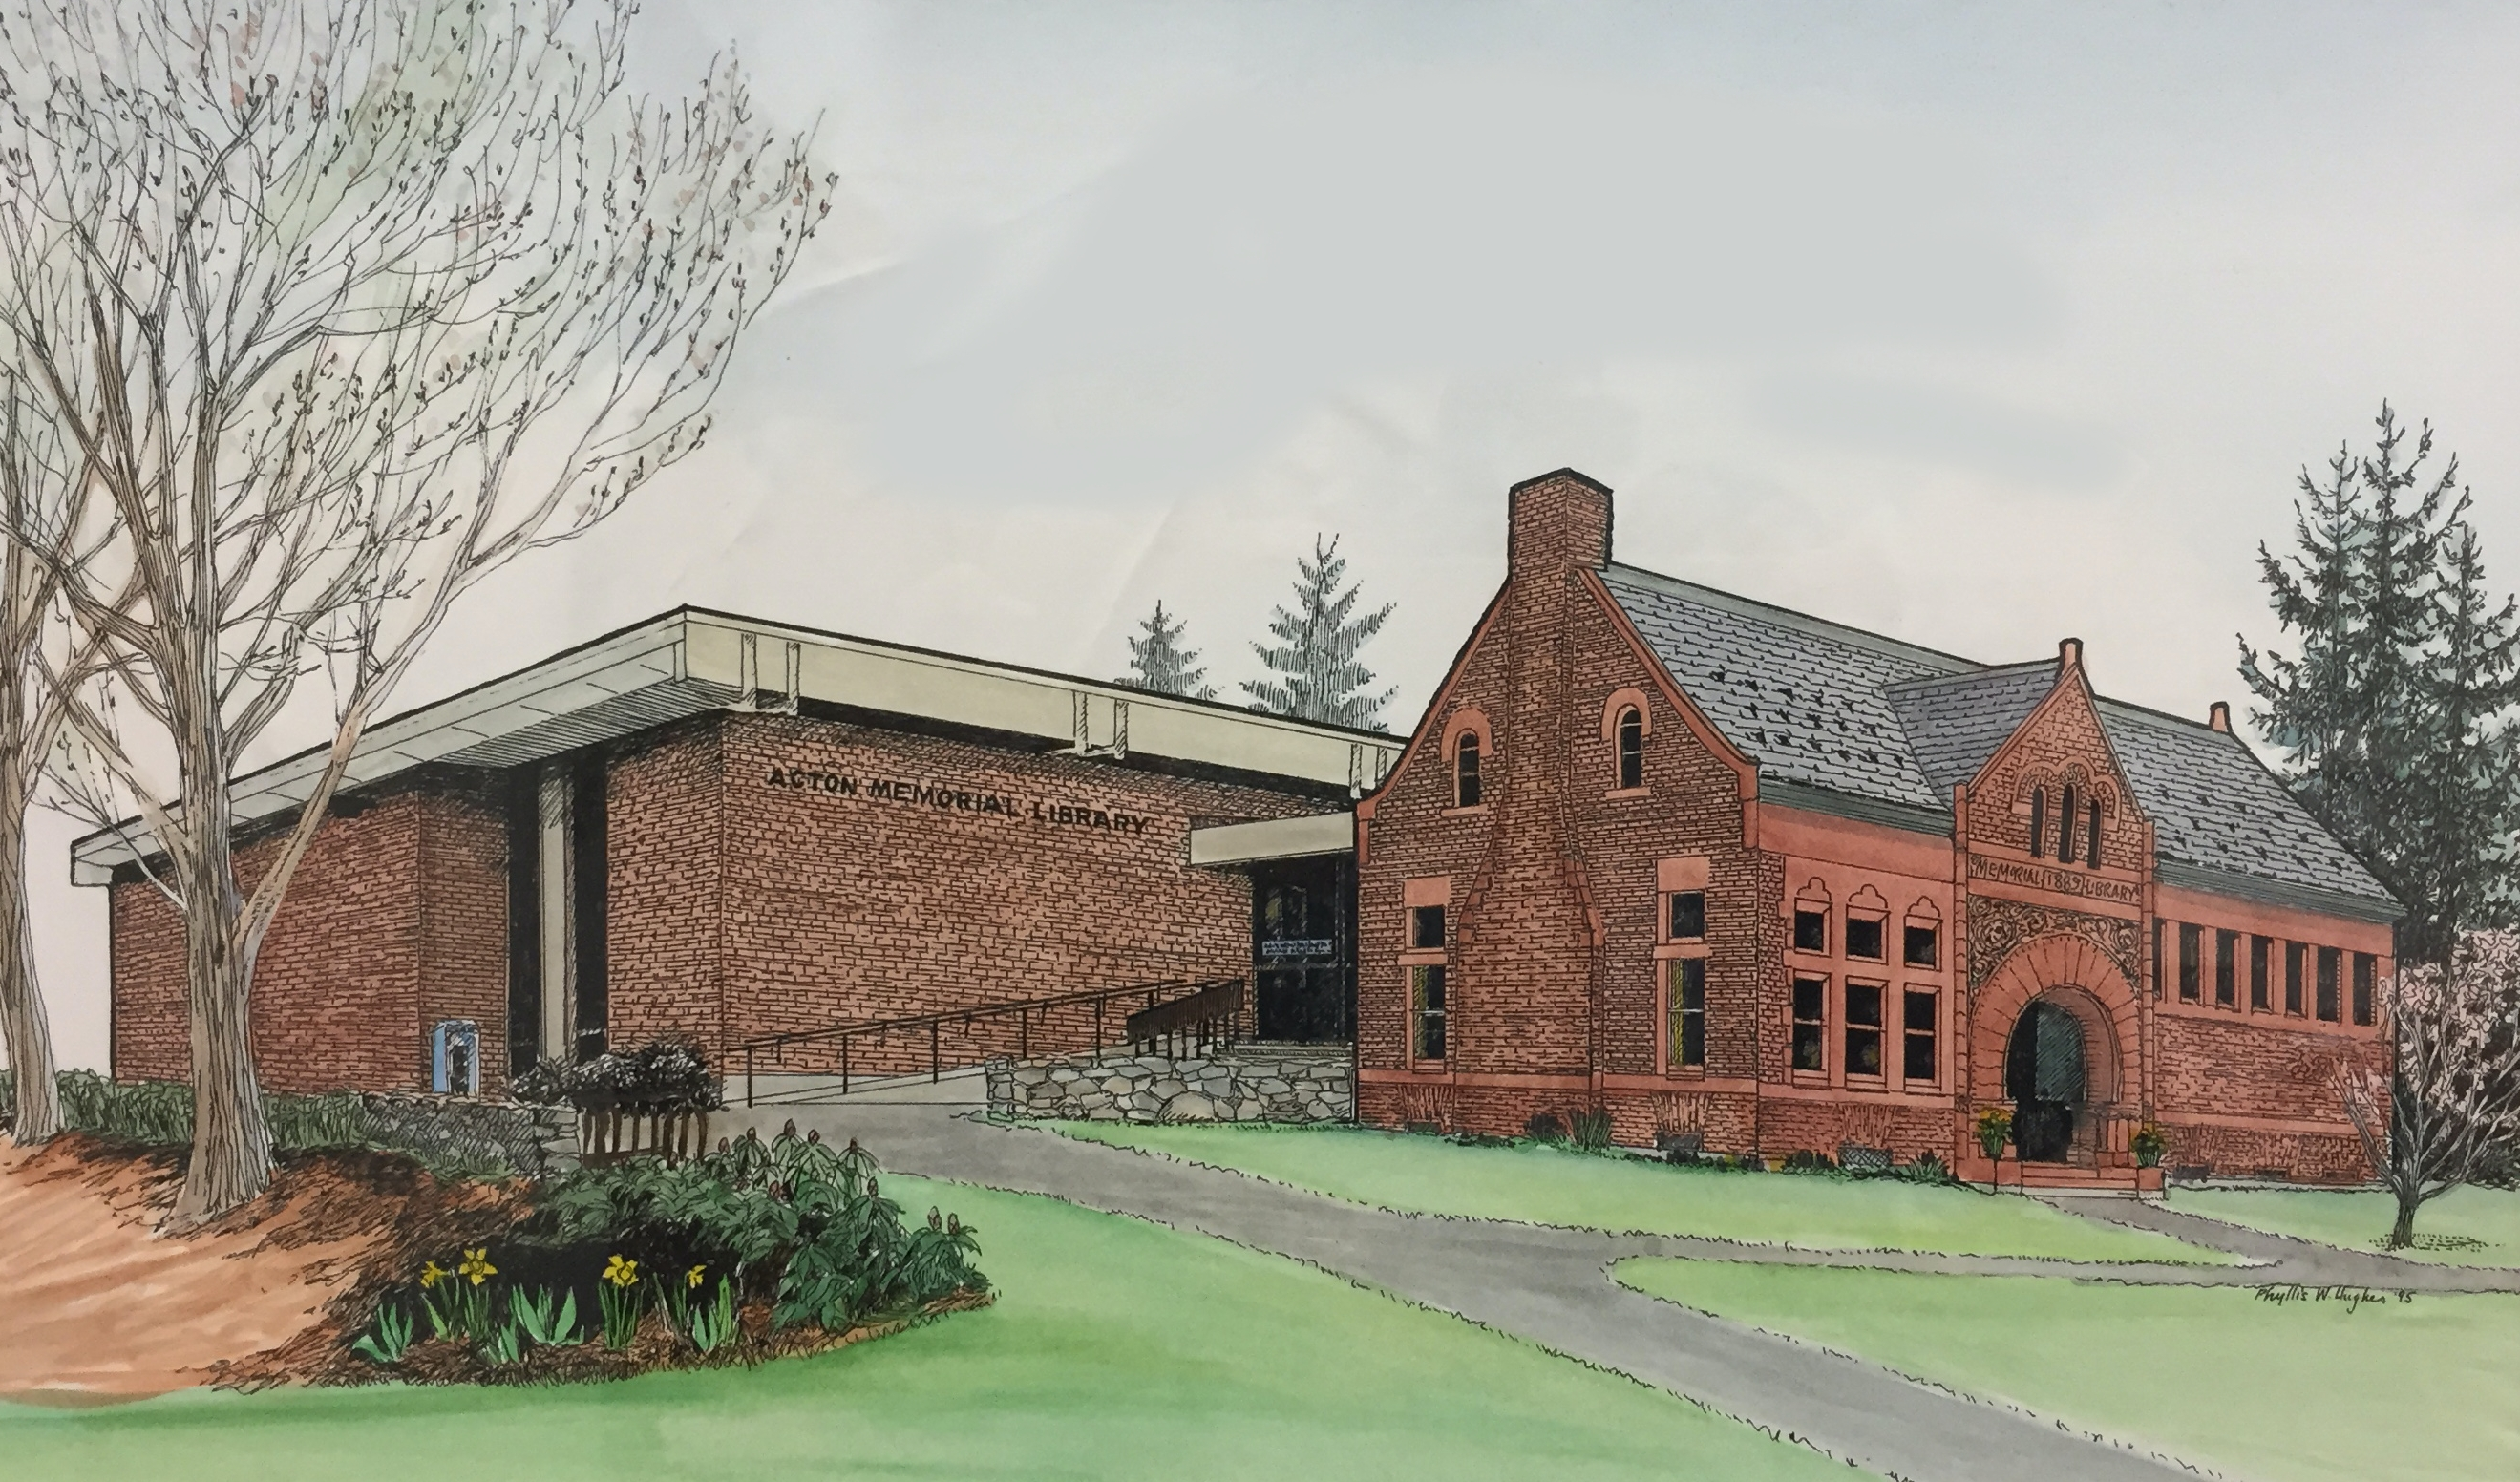 A sketch of the Acton Memorial Library with 1967 addition, by Phyllis Hughes